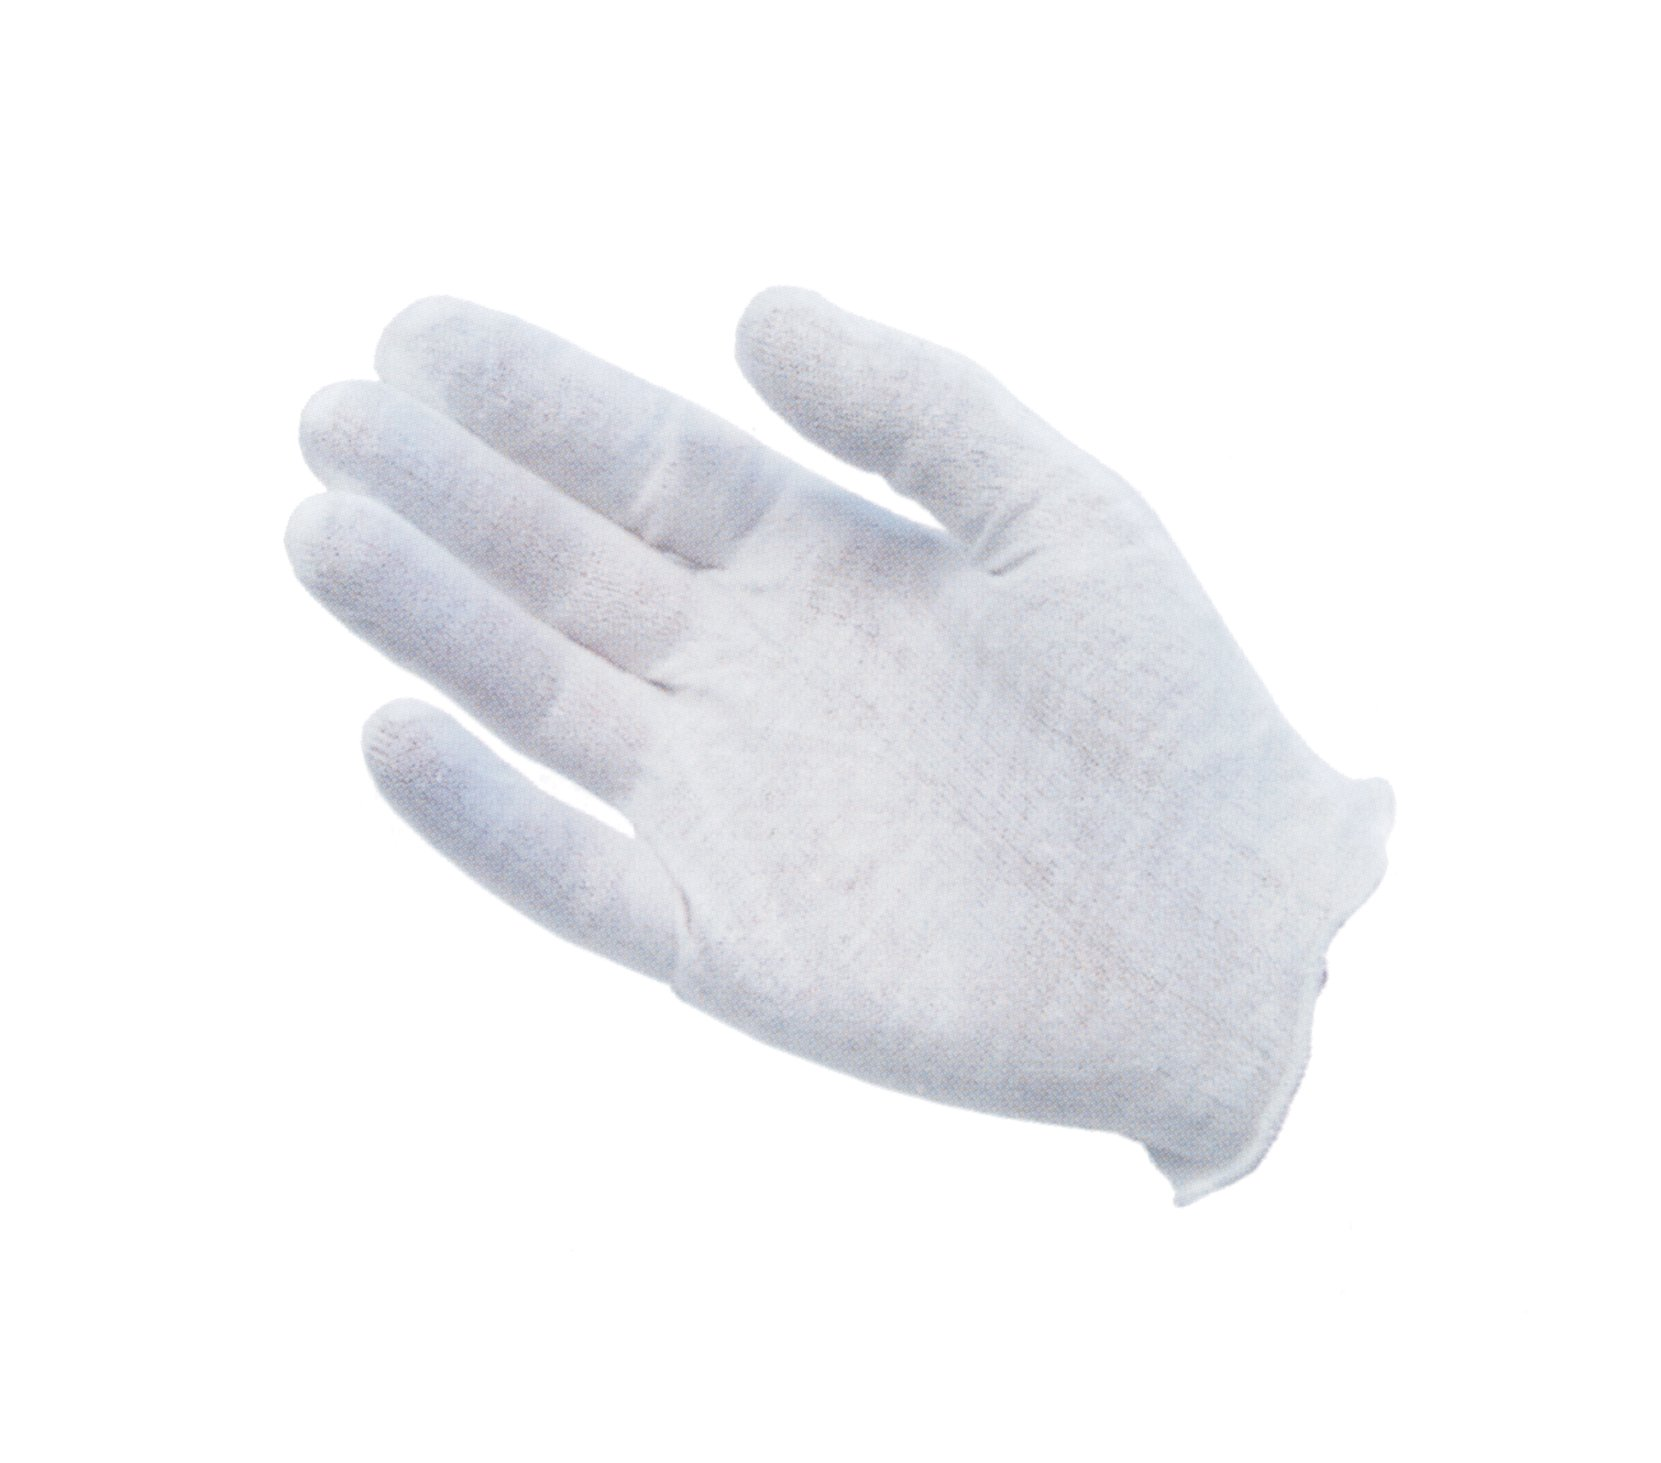 Protective Industrial 97-520 Cotton Lisle Medium Weight Men's Glove Liner, 9'' Length, Large, White (Pack of 12)